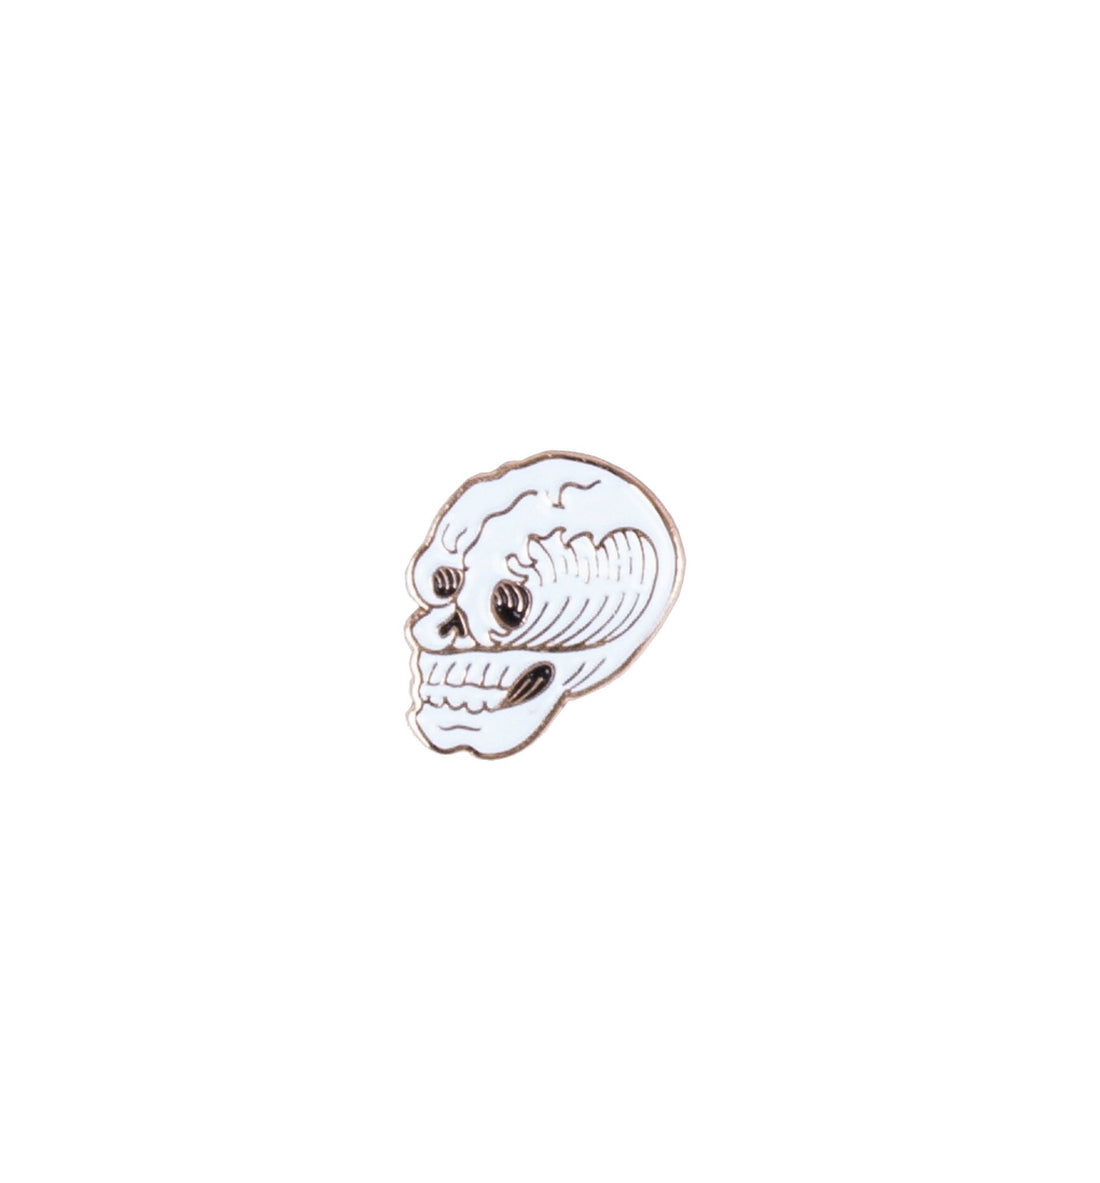 Odds & Sods - Surf Or Death Pin - Accessories: Pins - Iron and Resin